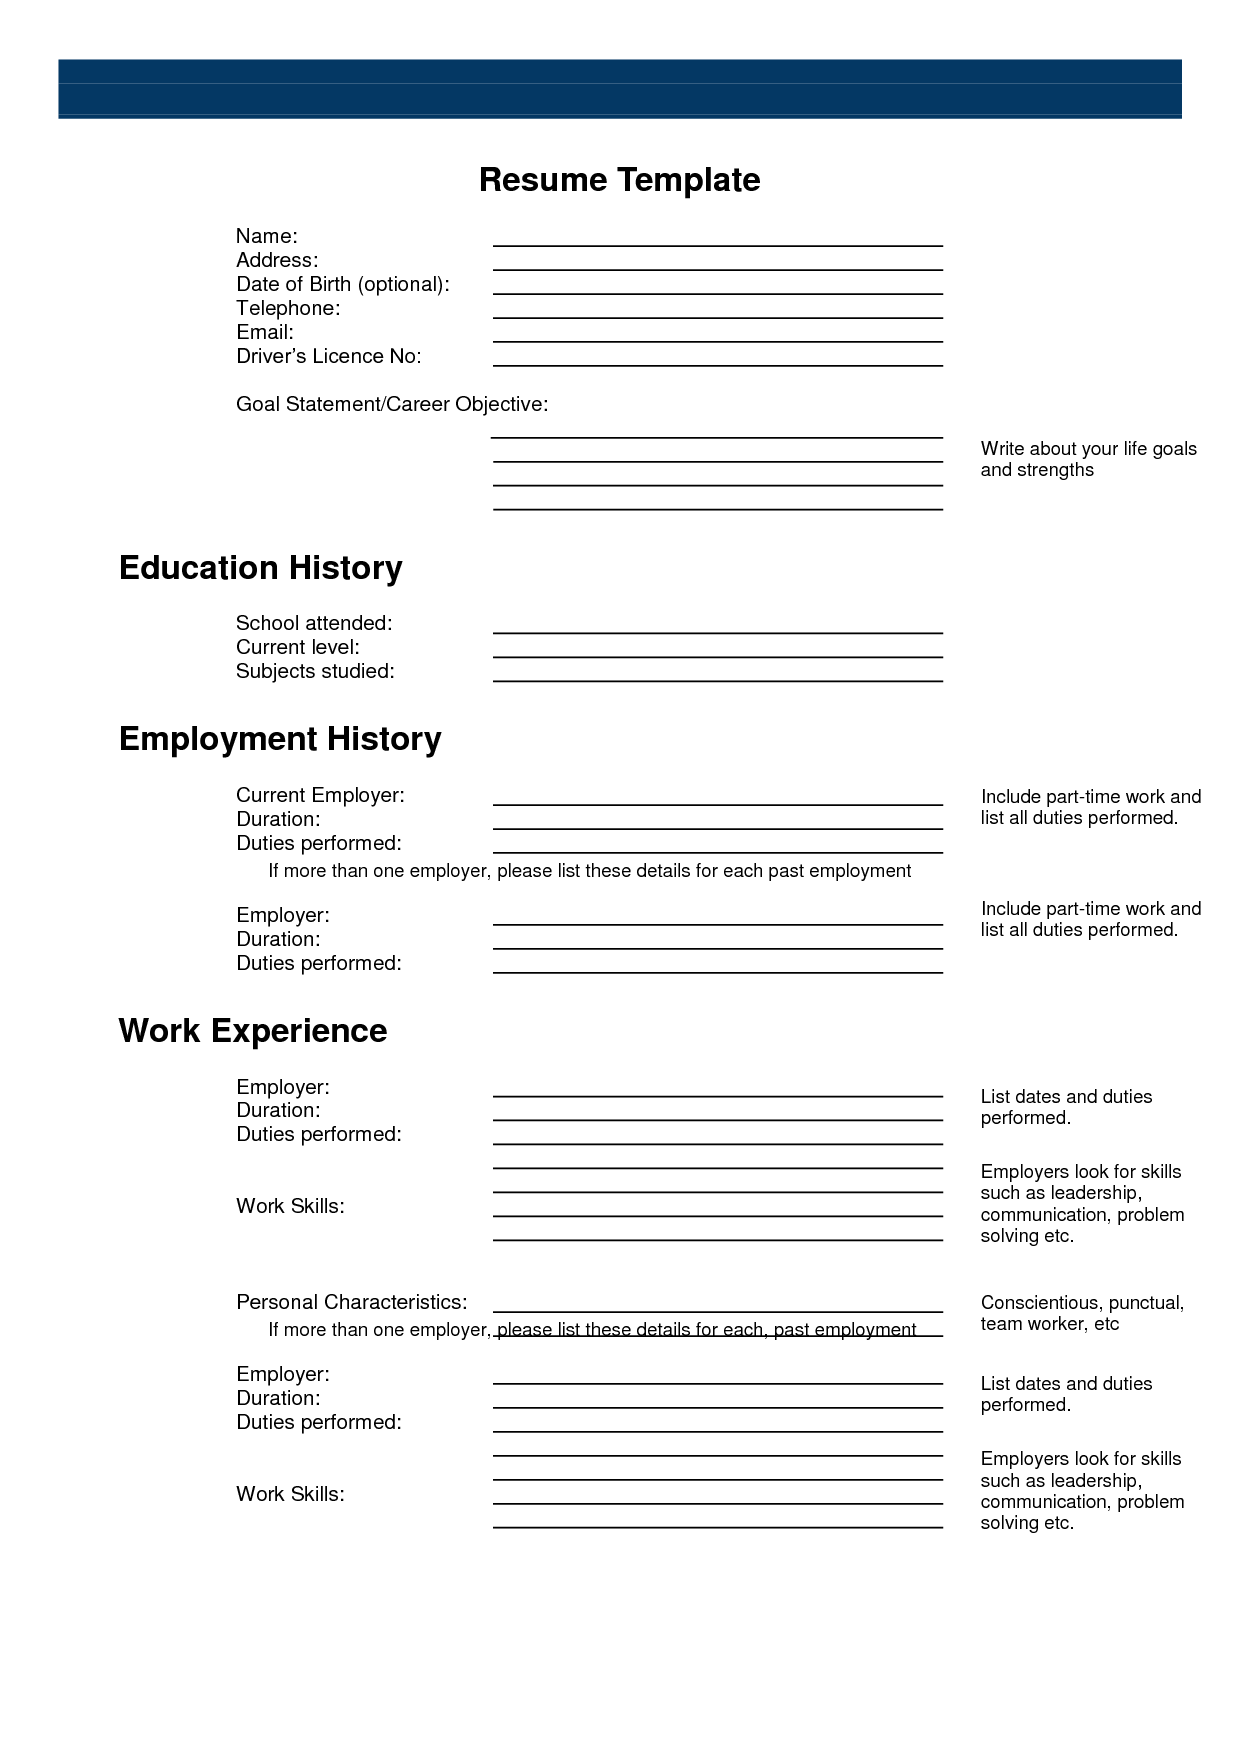 Free Blank Resume Templates Free Printable Sample Resume Templates  Httpwwwresumecareer